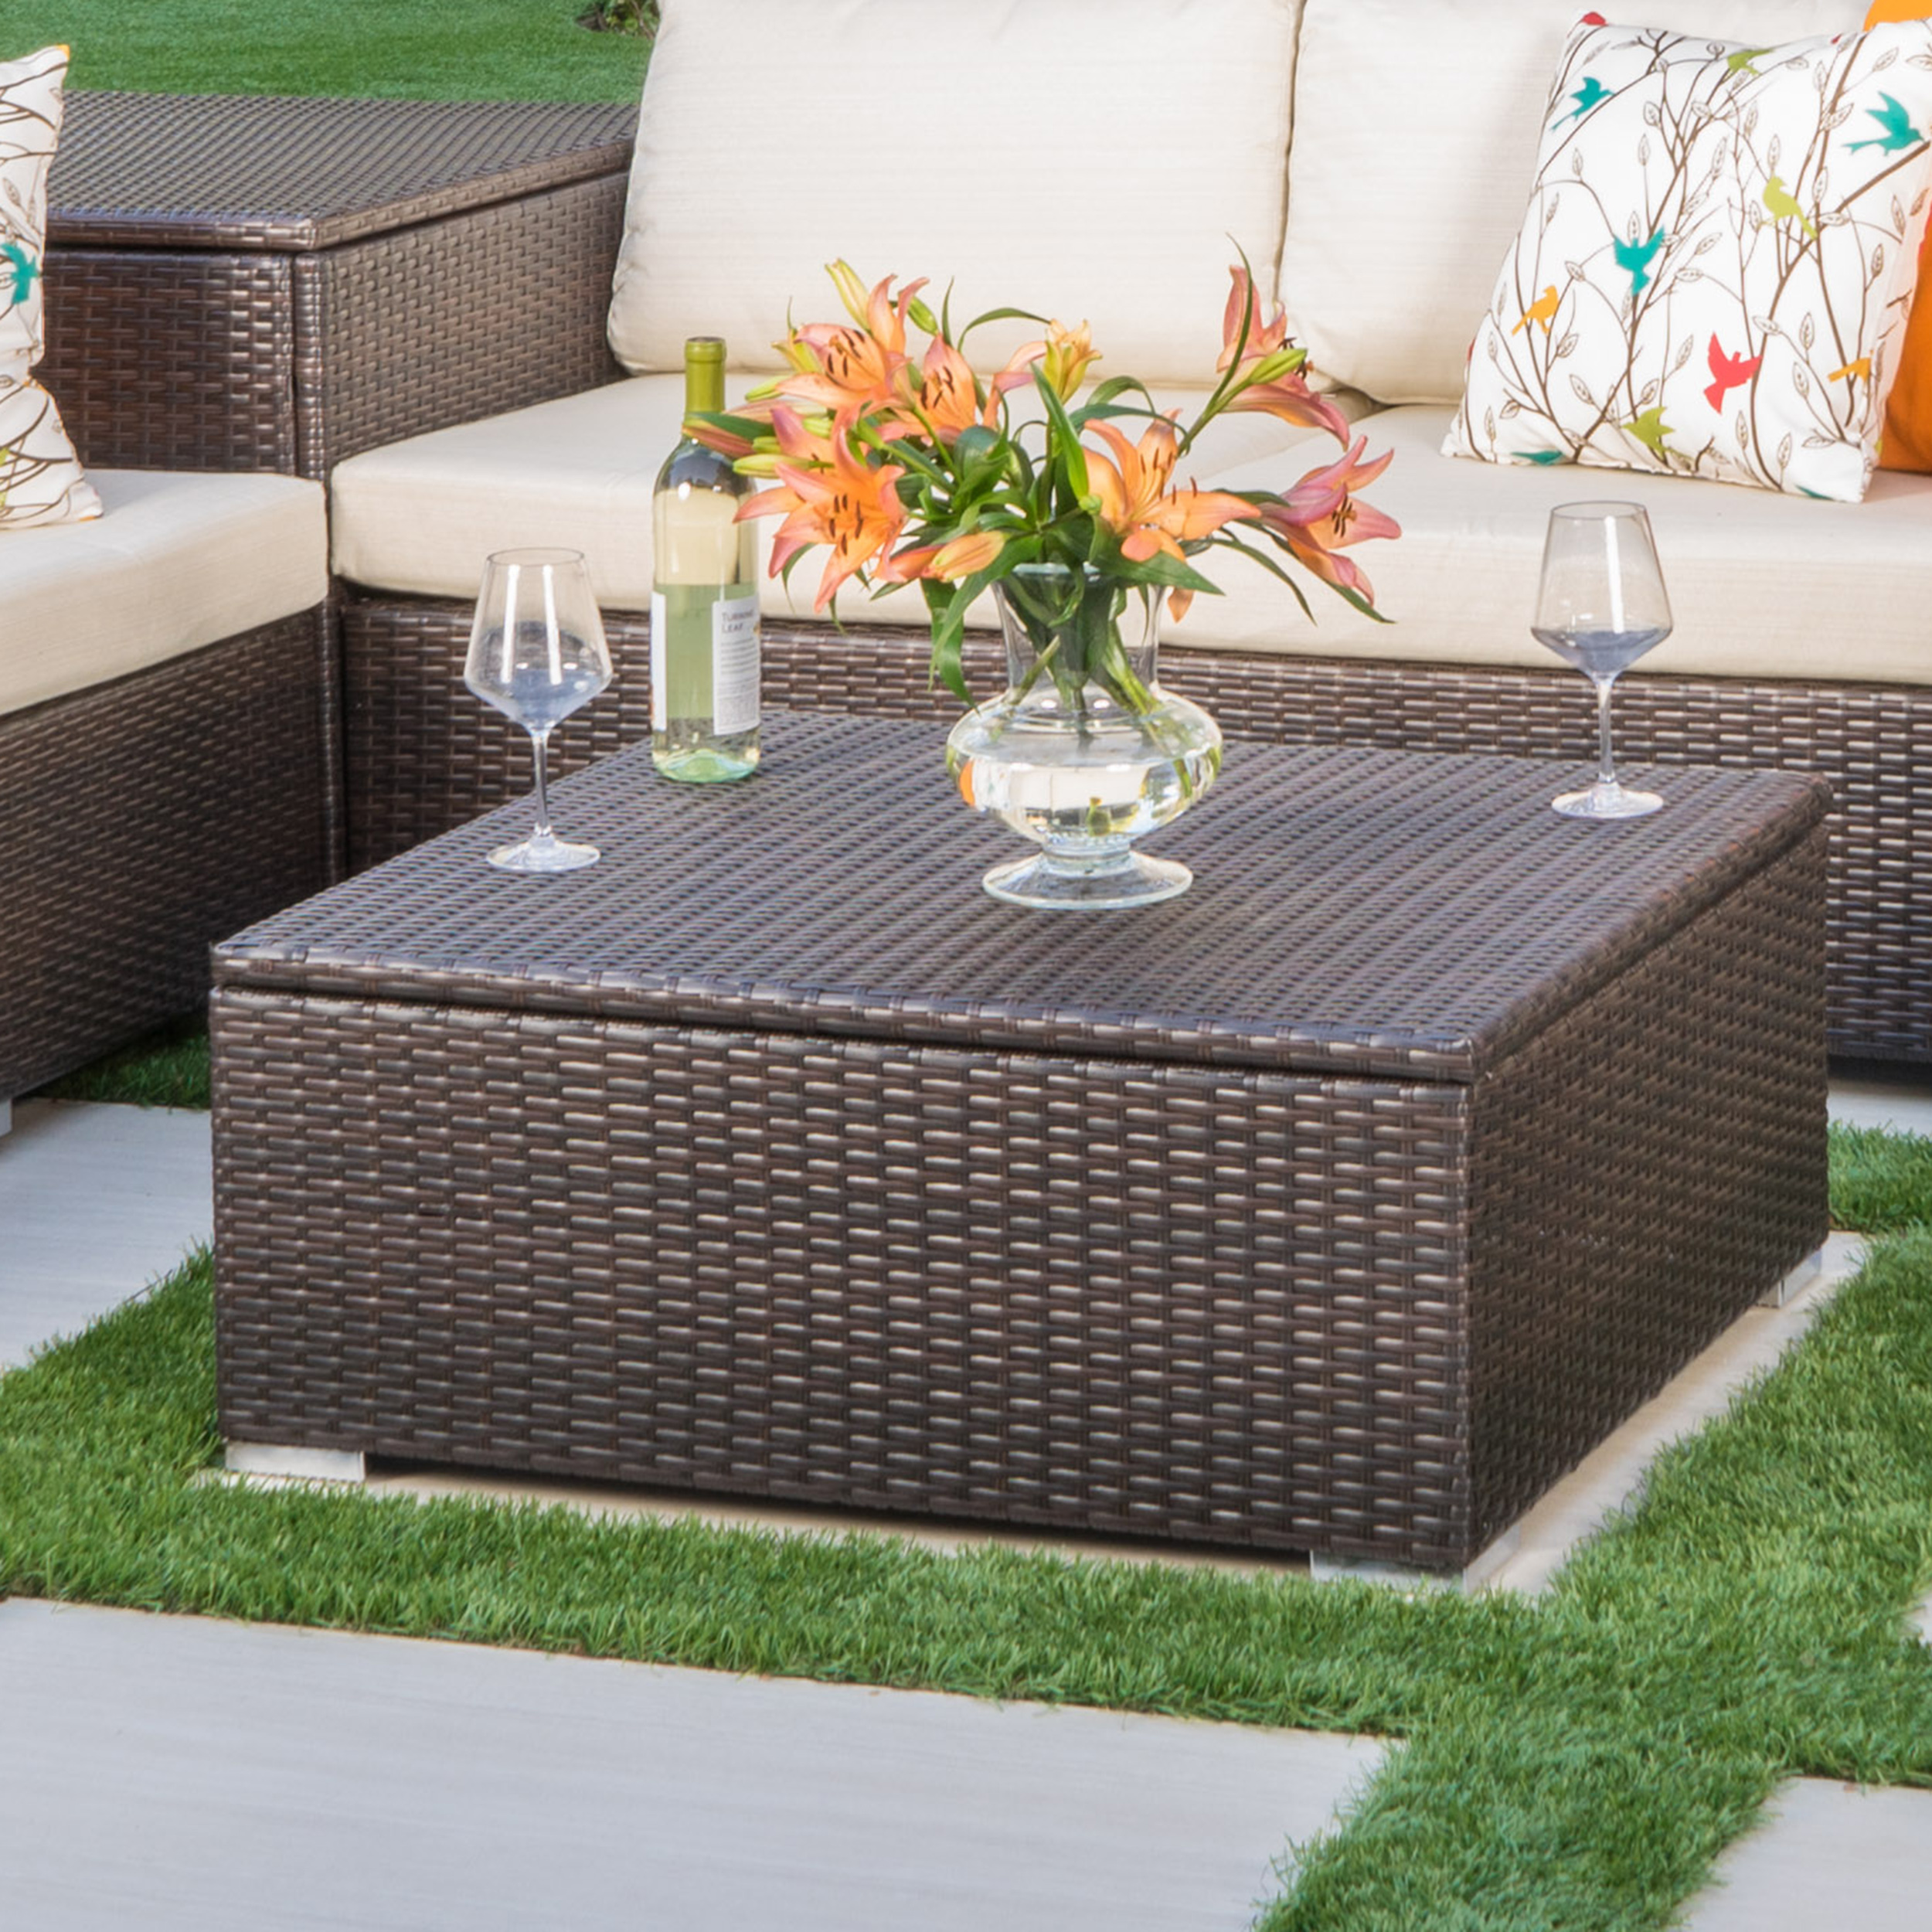 Faviola Outdoor Wicker Coffee Table with Storage, Multibrown by Noble House